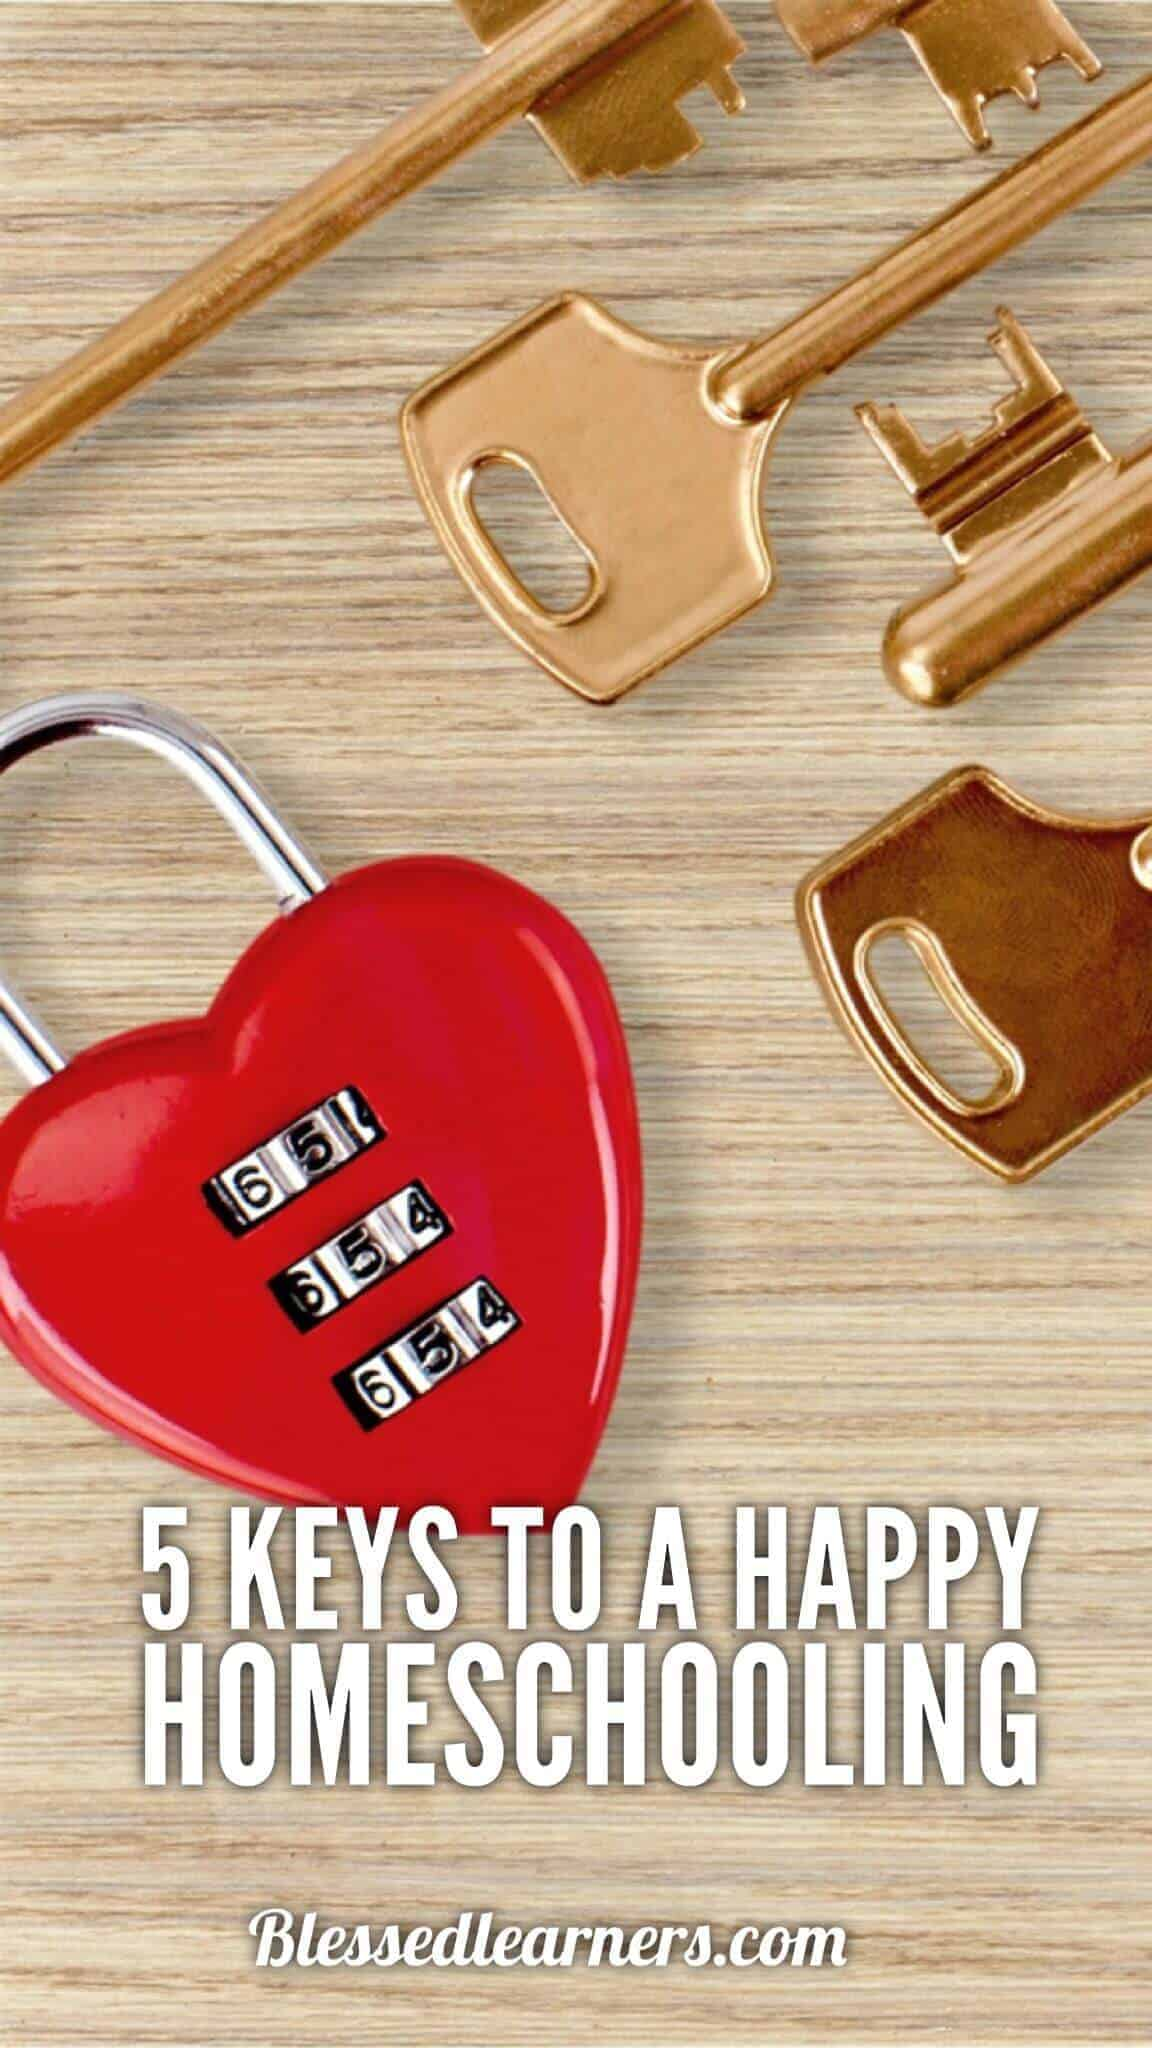 5 Keys to A Happy Homeschooling